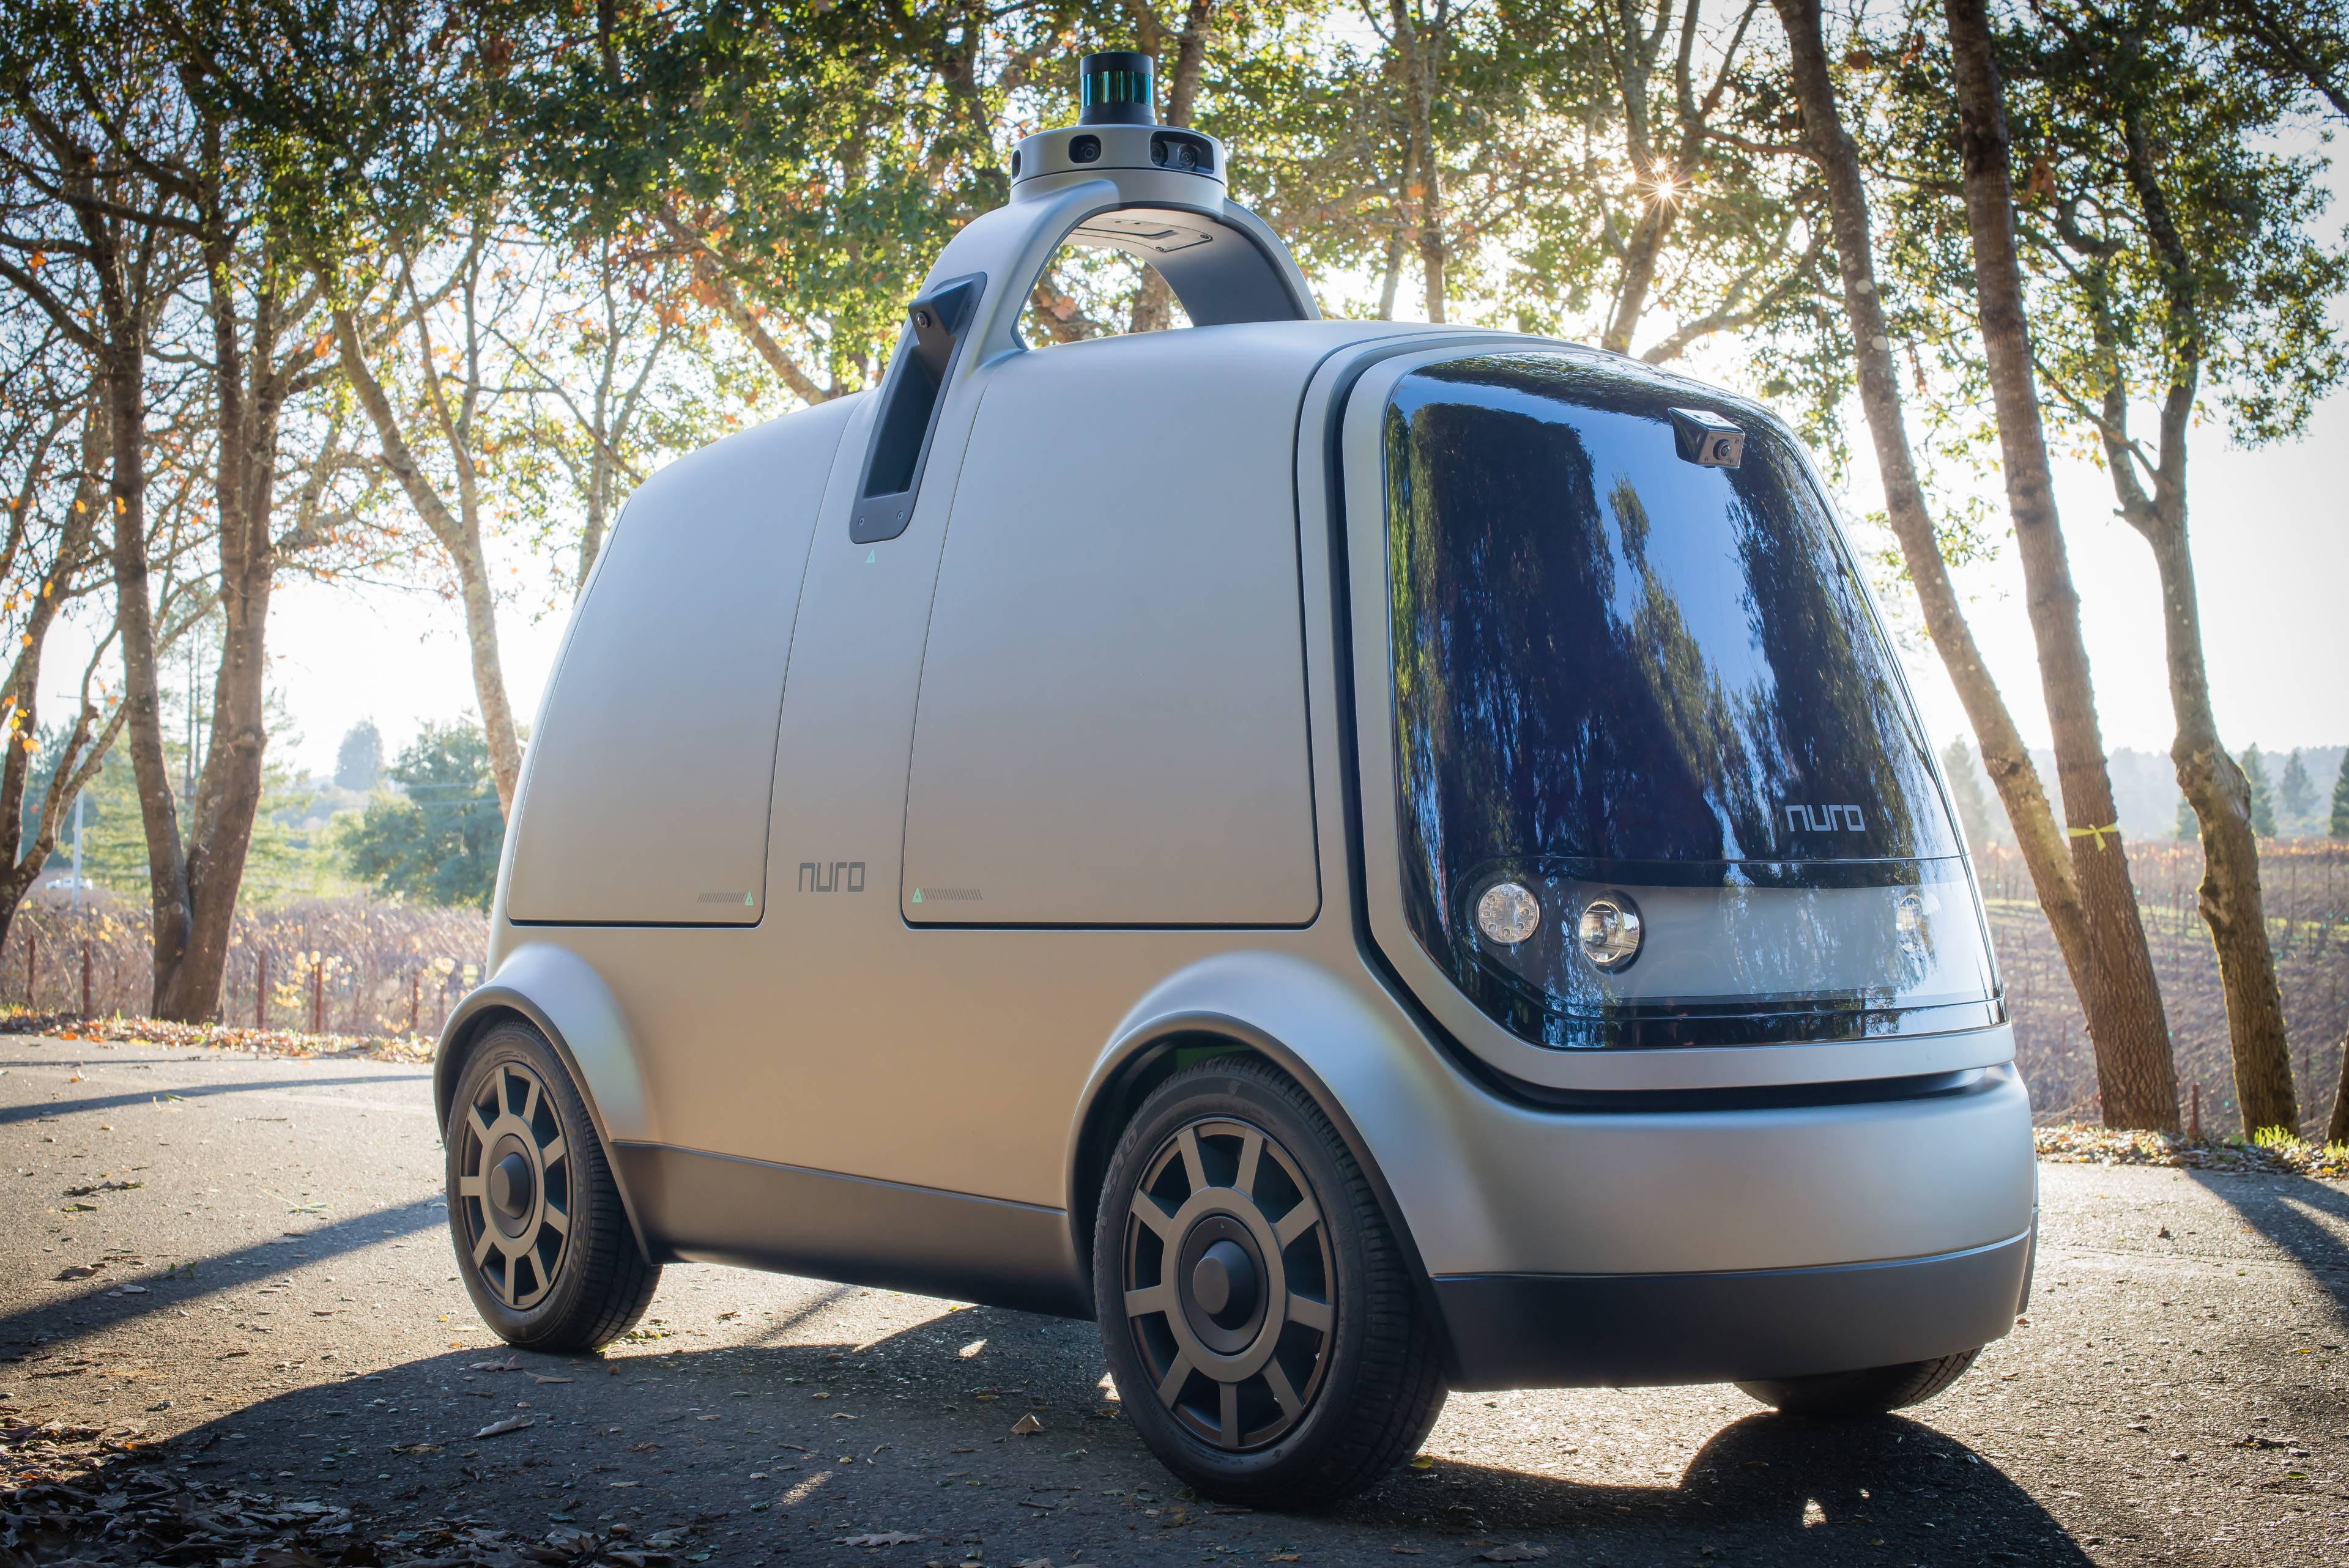 The new autonomous vehicle unveiled last week by Nuro, a Silicon Valley startup.